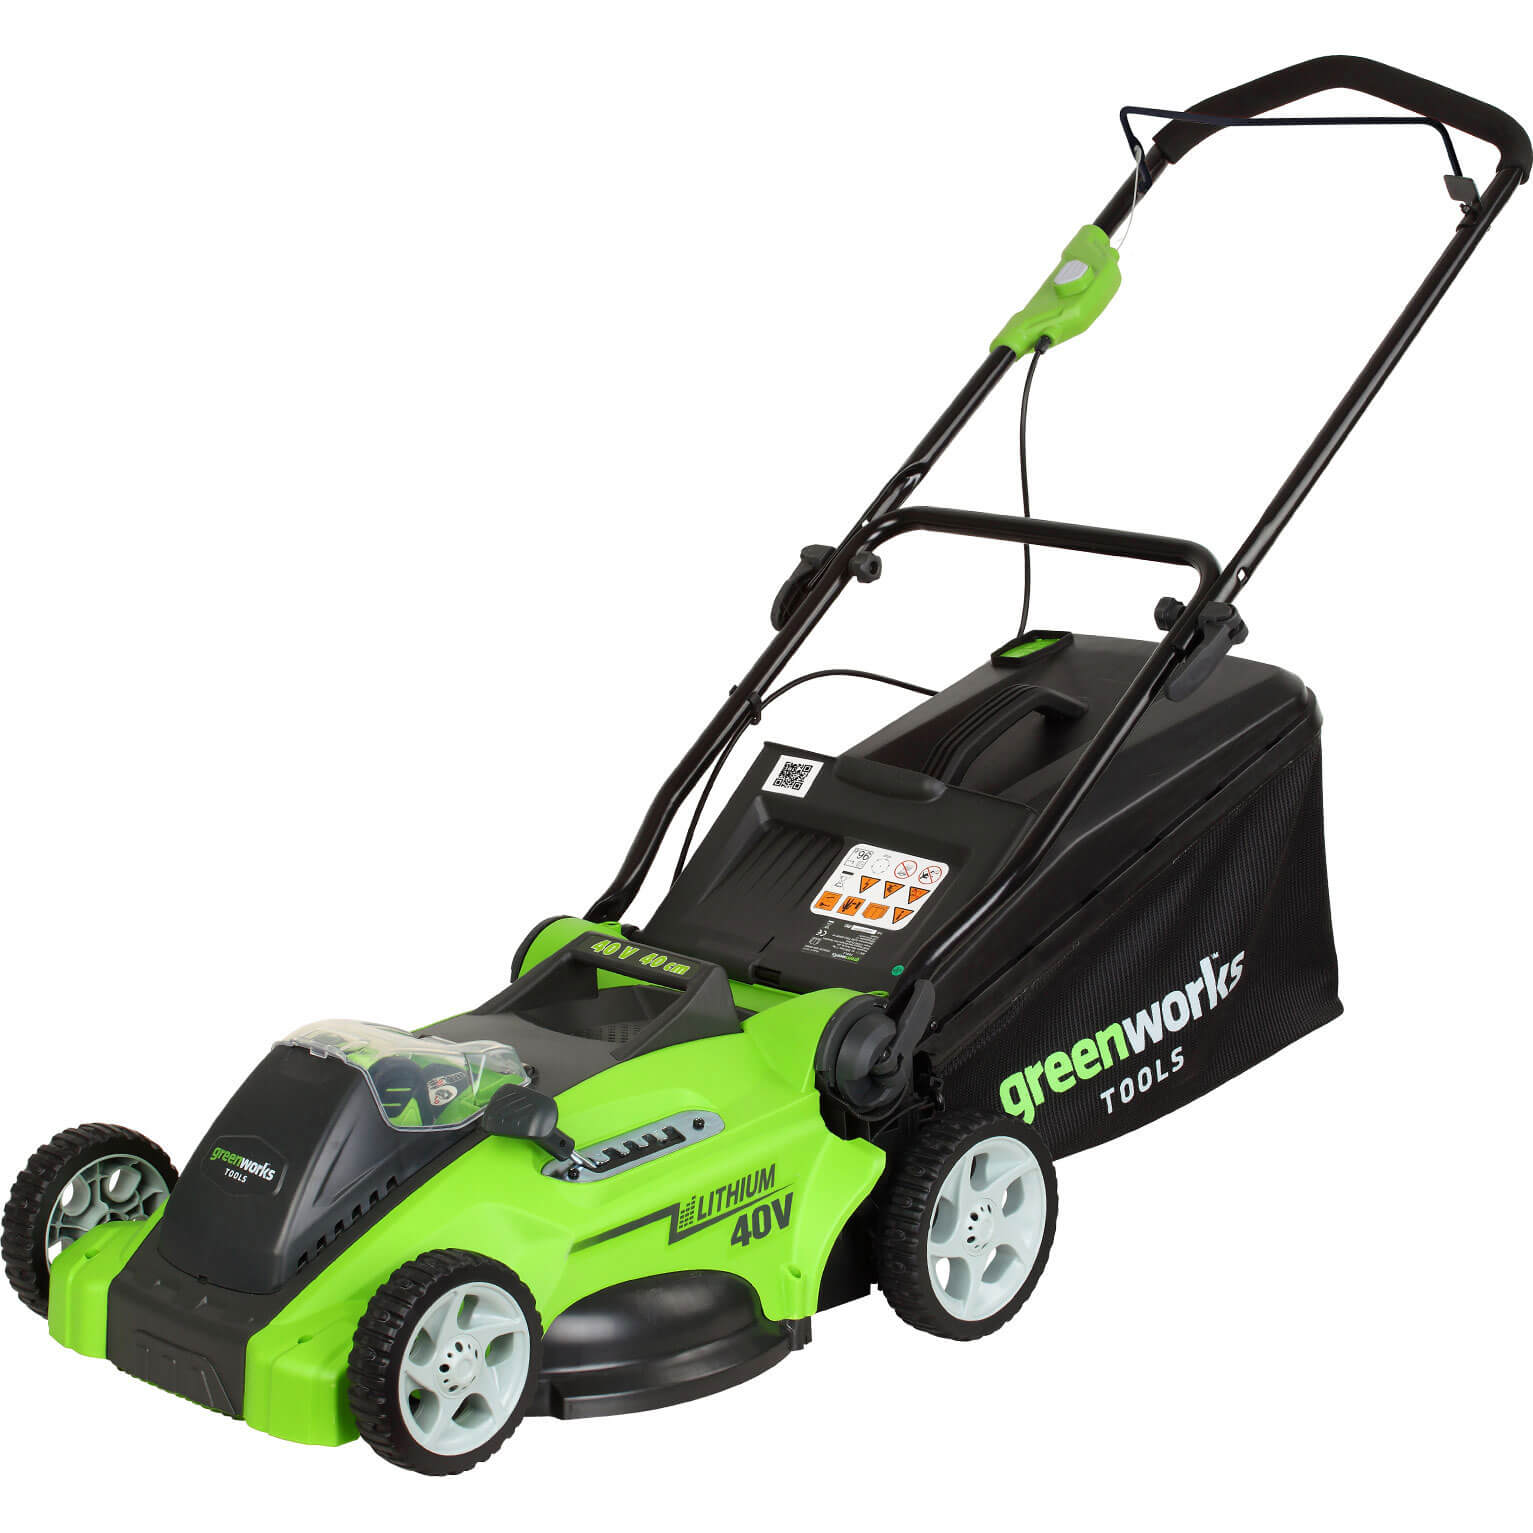 Image of Greenworks G40LMK 40v Cordless Rotary Lawnmower 400mm No Batteries No Charger